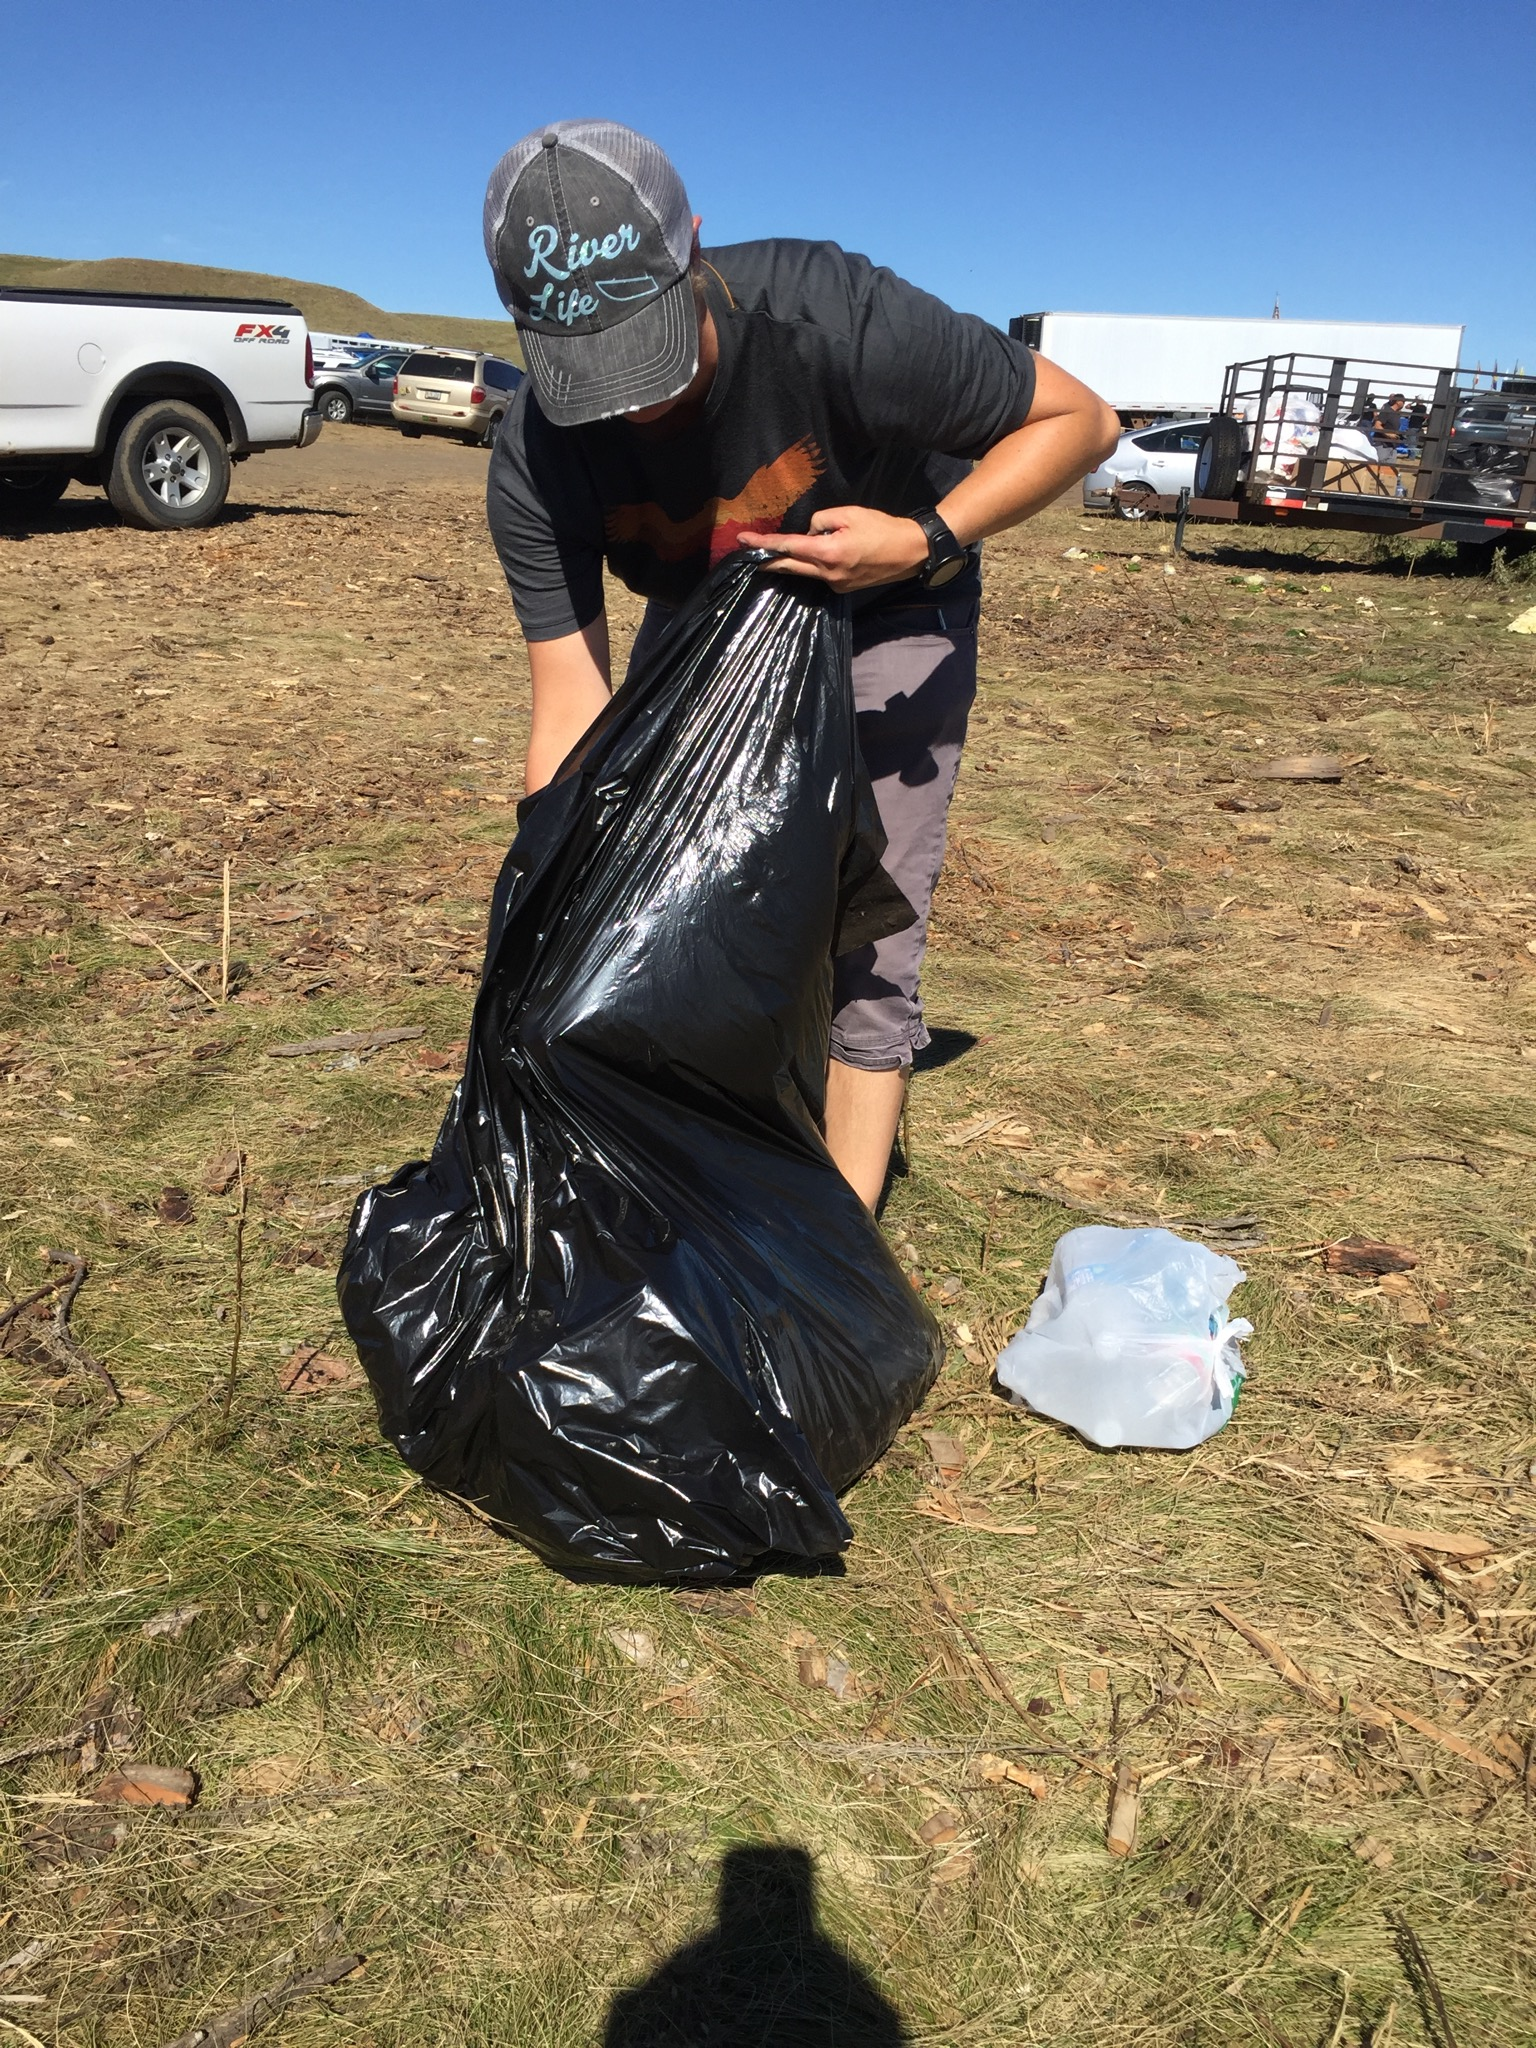 Collecting garbage and recycling from the grounds of the camp. There's a lot of everyday ways to support the community gathered at Oceti Sakowin Camp.